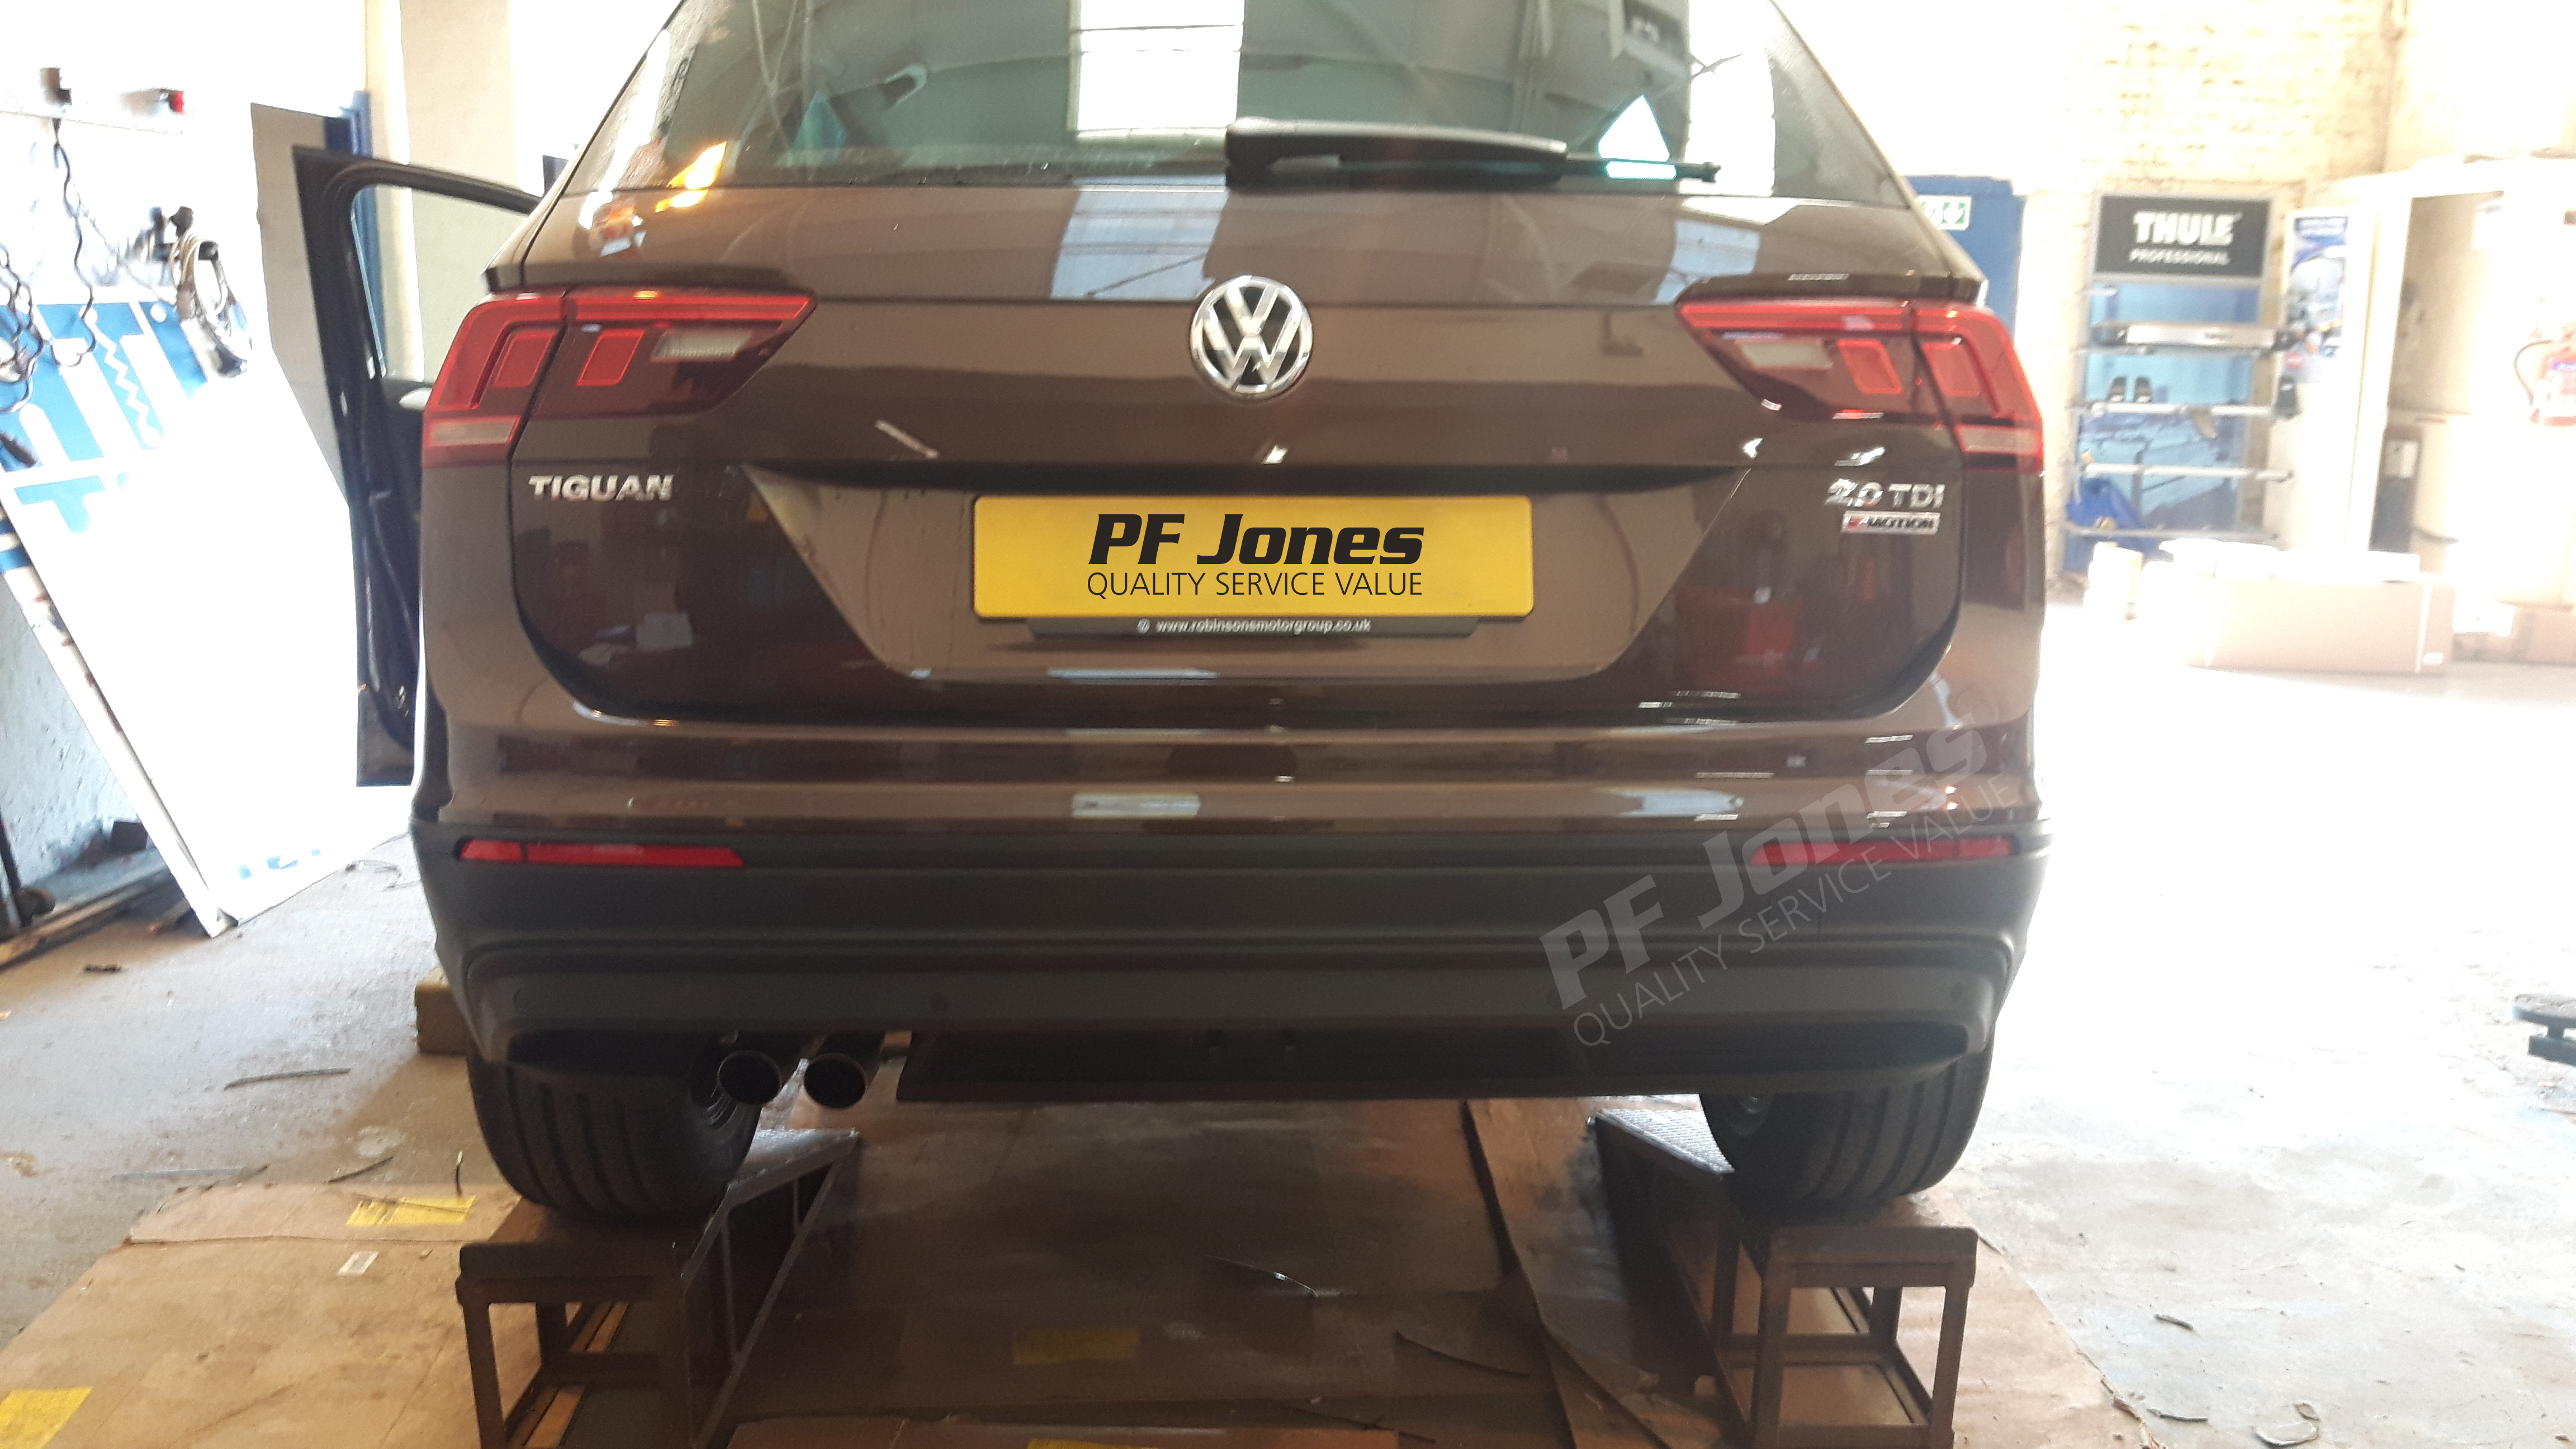 witter_detachable_towbar_with_dedicated_13pin_electrics_fitted_to_brand_new_vw_tiguan_2 Interesting Info About 2018 Vw Tiguan R Line with Mesmerizing Pictures Cars Review